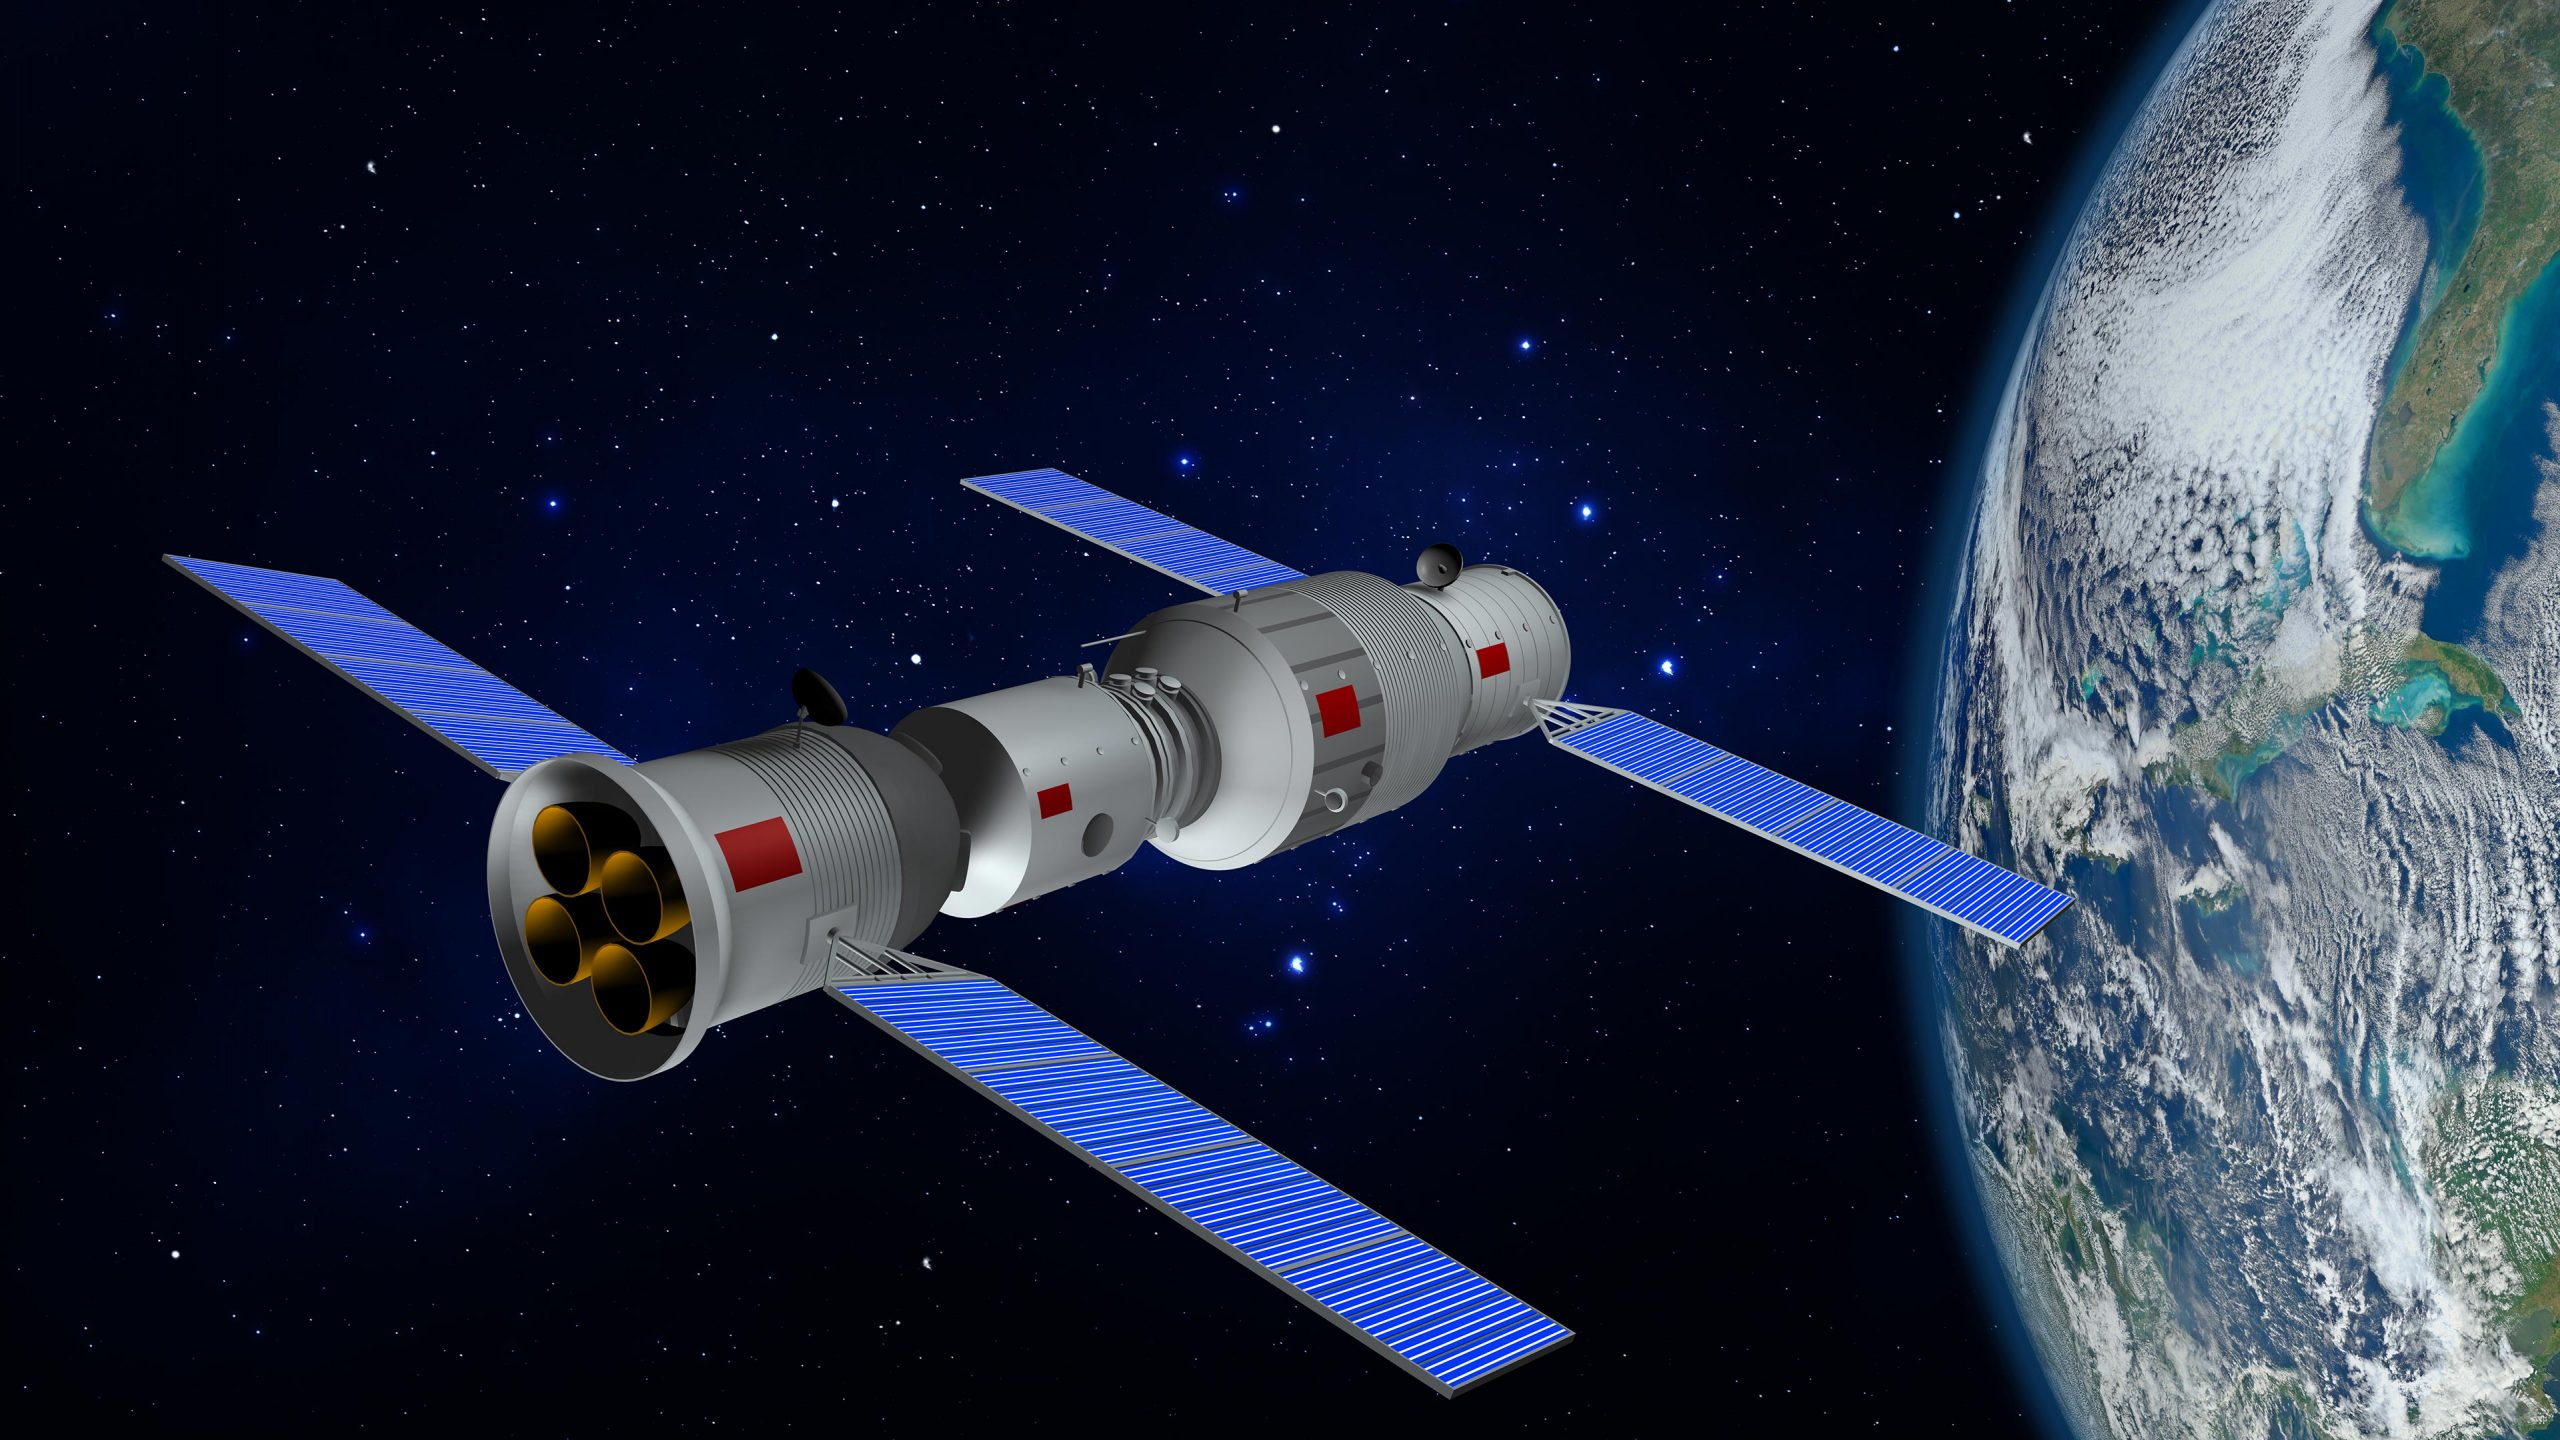 Another historic Chinese initiative to build a space station